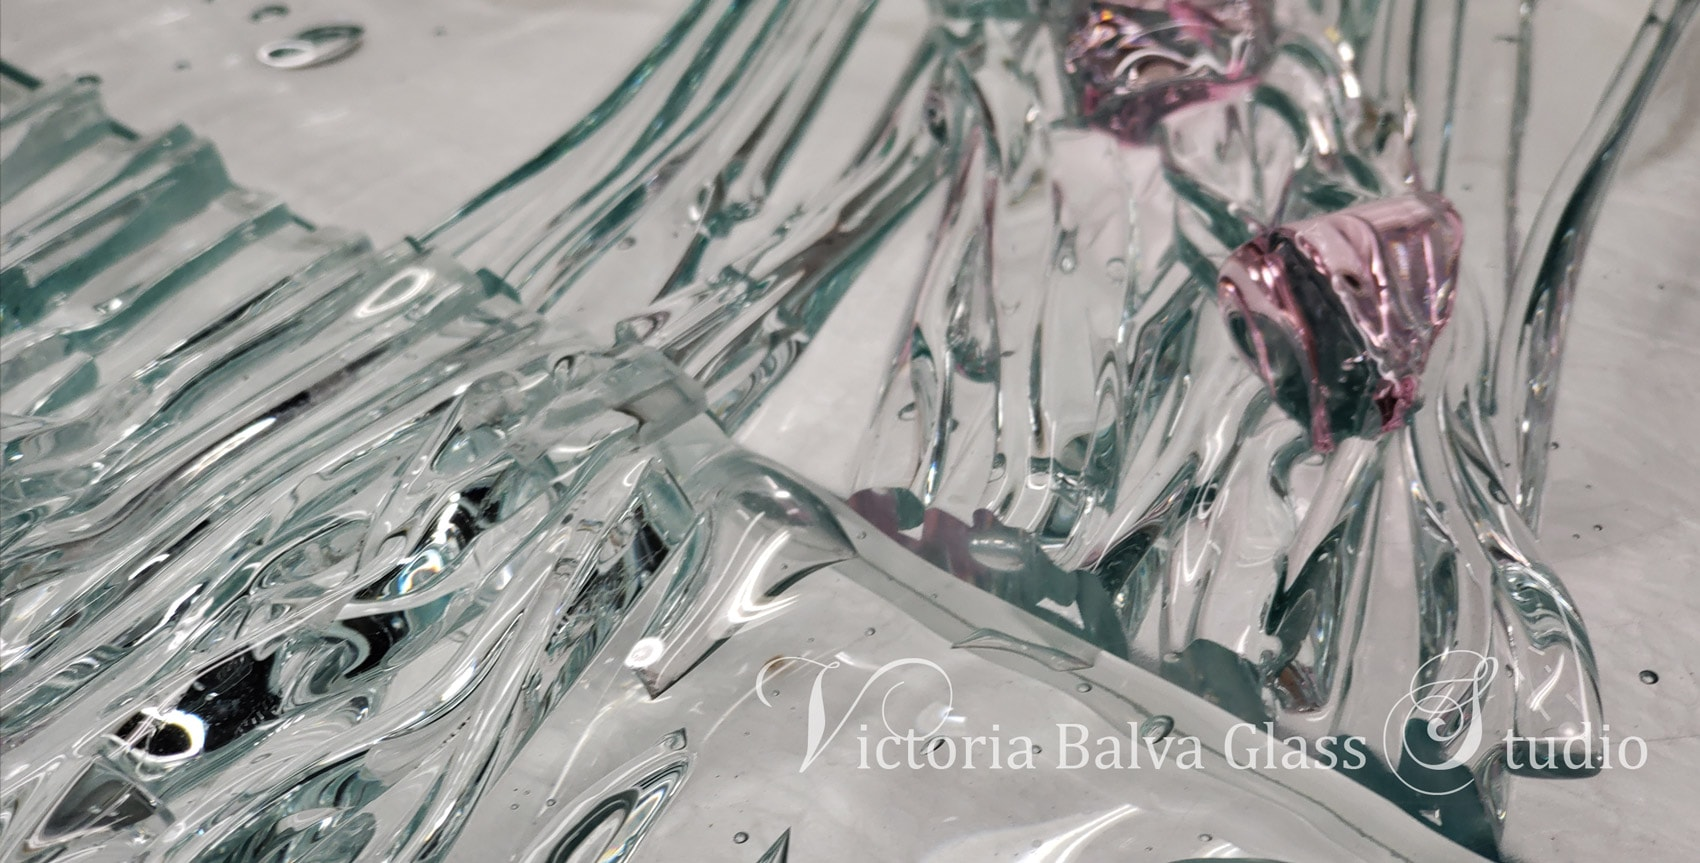 contemporary kilm formed glass artwork by Victoria Balva